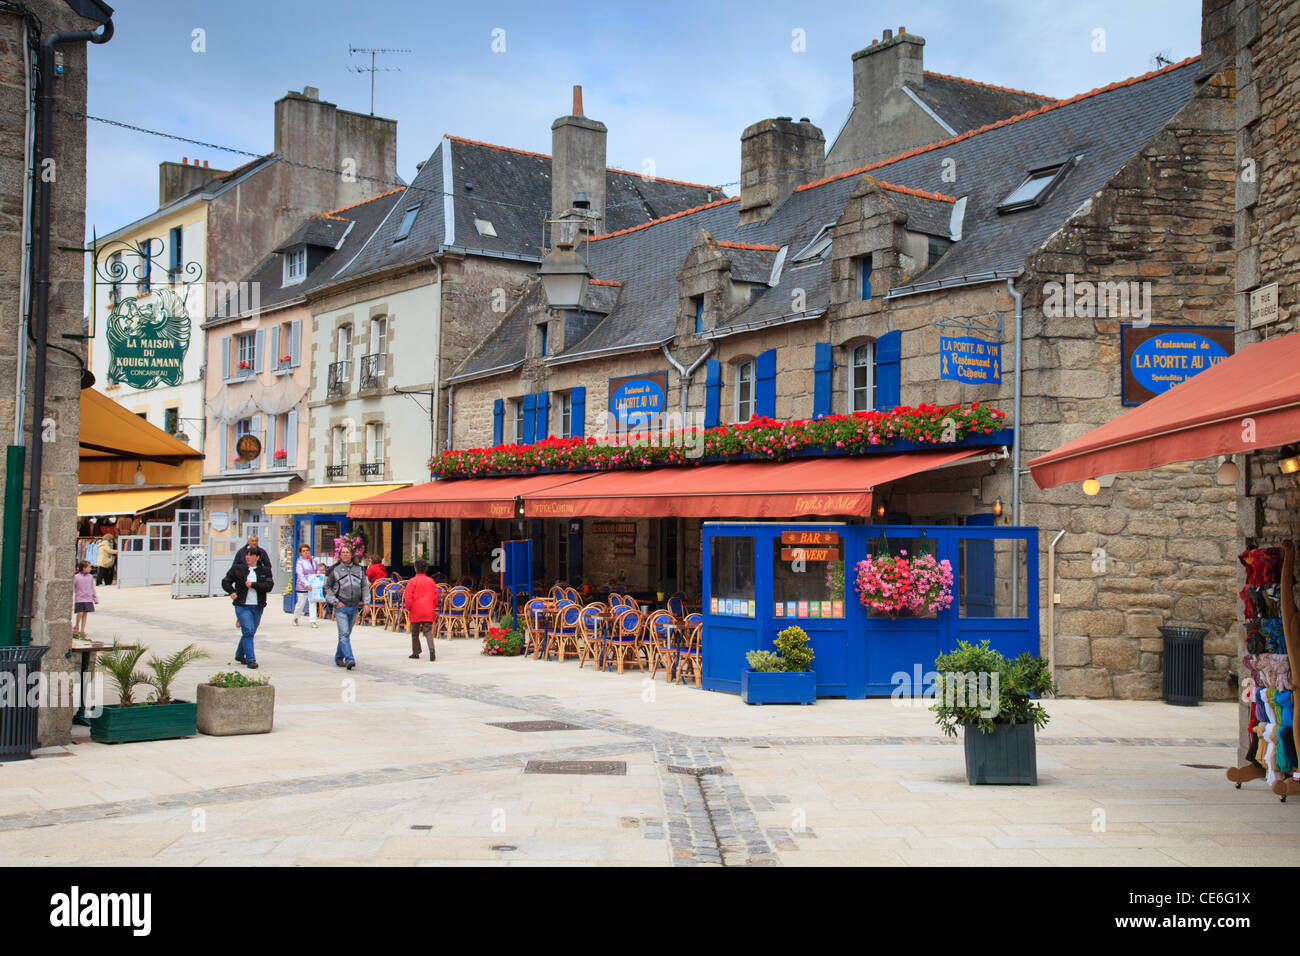 People strolling amongst the shops and restaurants in the Ville Close, the historic quarter of Cocarneau, Brittany, - Stock Image